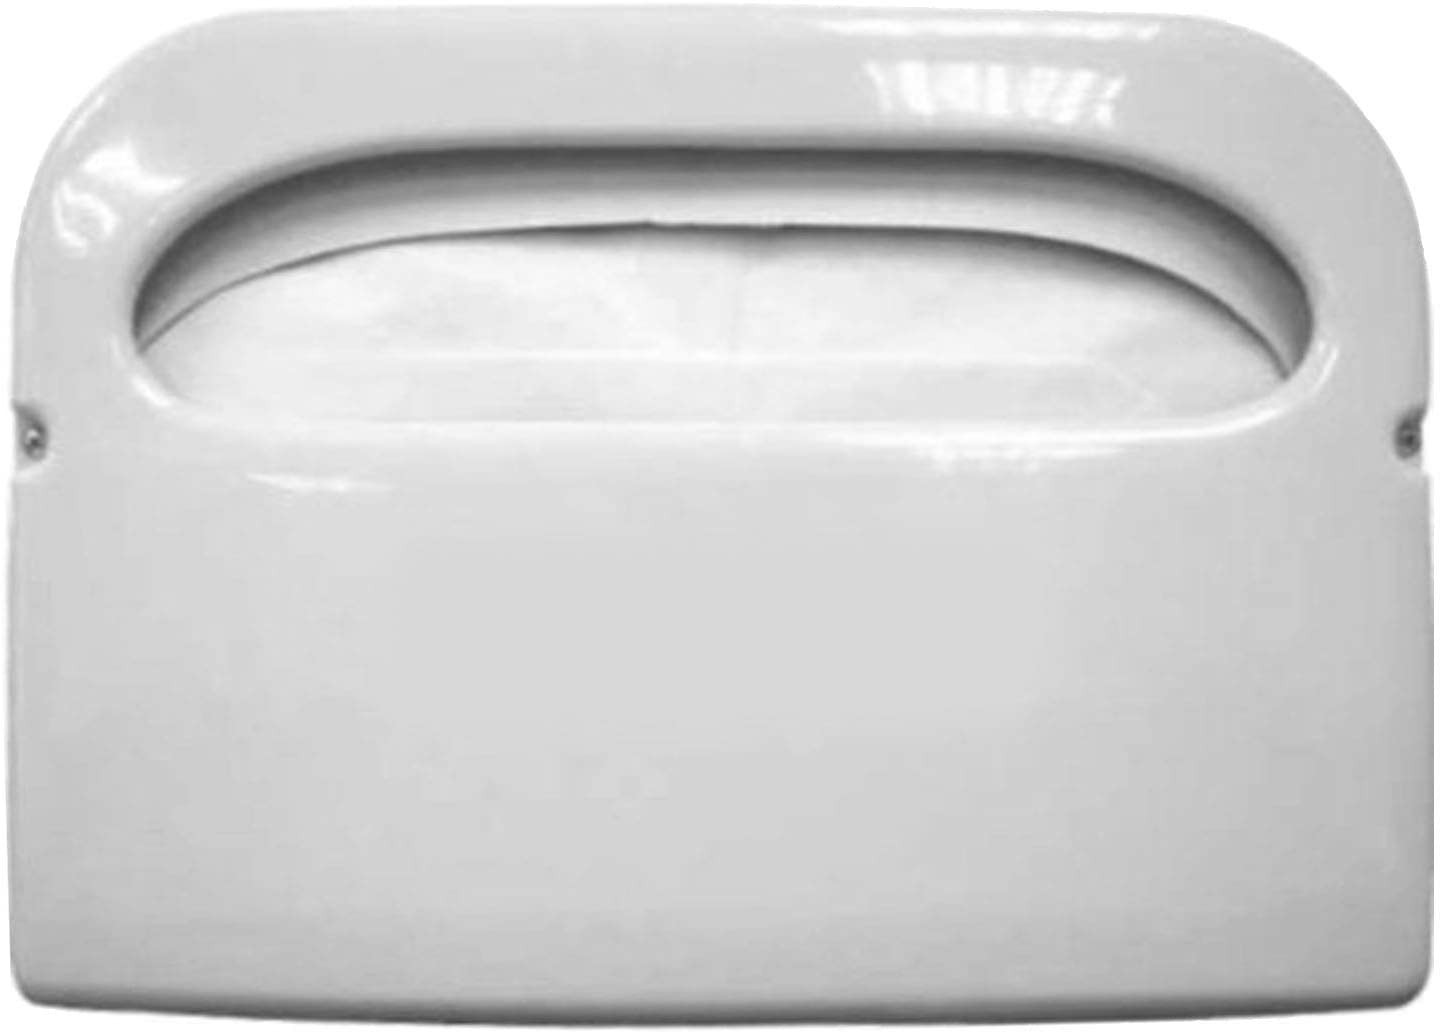 TigerChef Toilet Seat Cover Dispenser with 1,000 Toilet Seat Covers